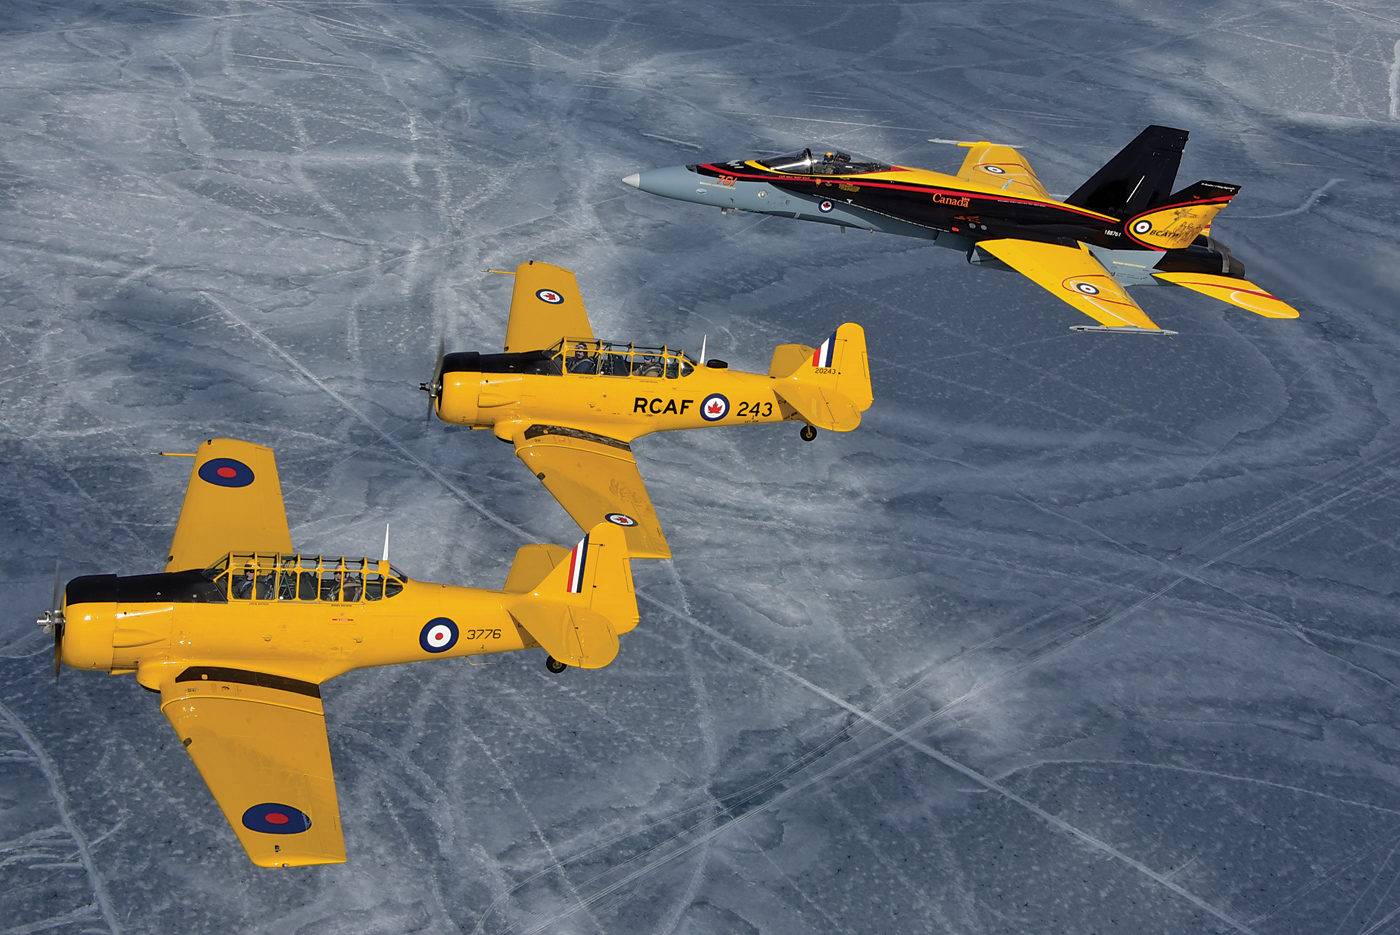 North American Harvard Mk IV aircraft, pictured here with the 2016 RCAF Demo Hornet, will take part in several sesquicentennial events this year. Mike Reyno Photo